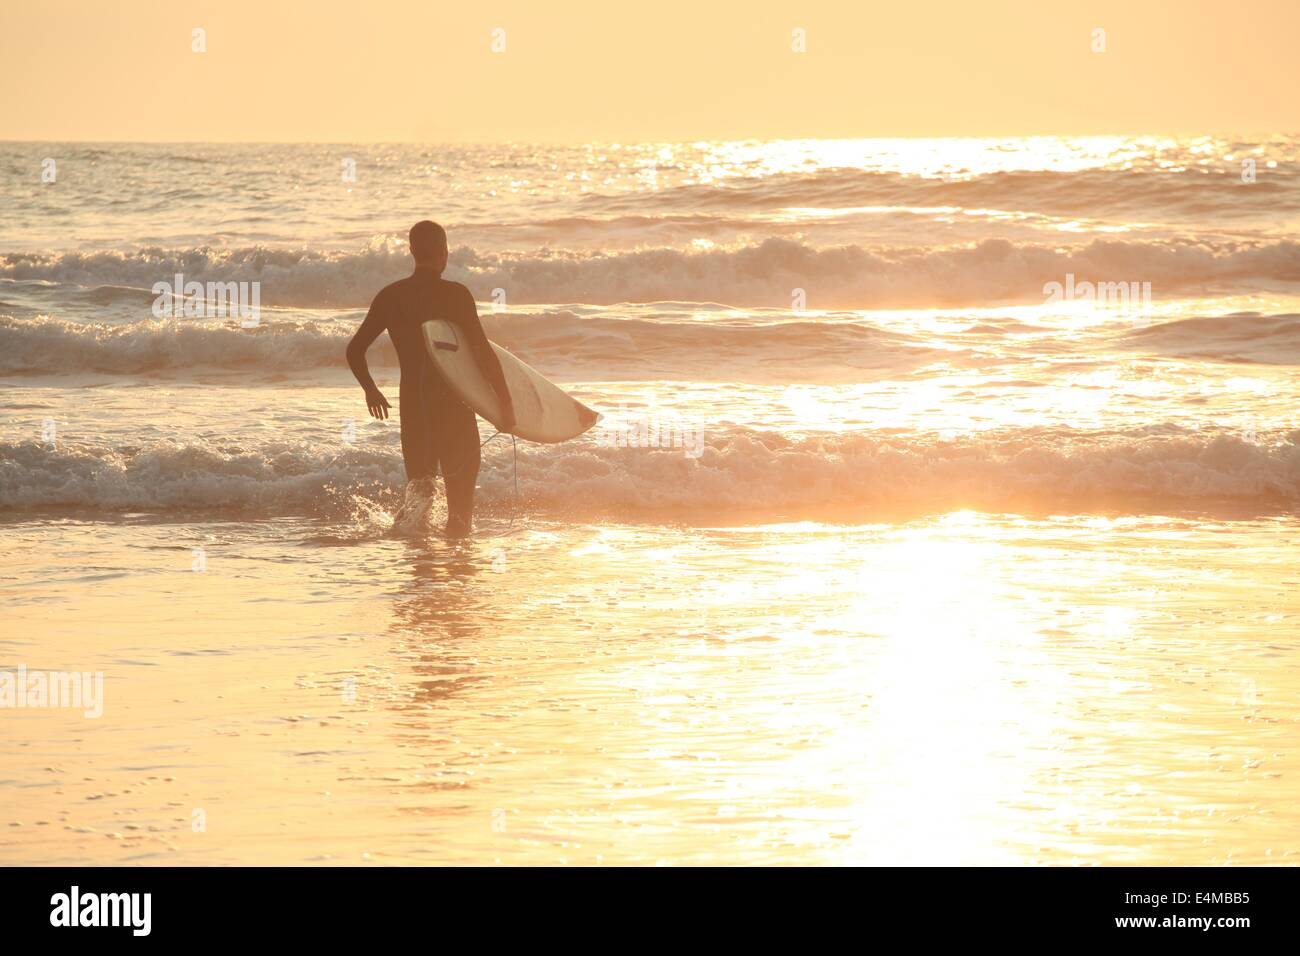 A surfer in the waves at sunset on Ocean Beach in San Francisco, California - Stock Image